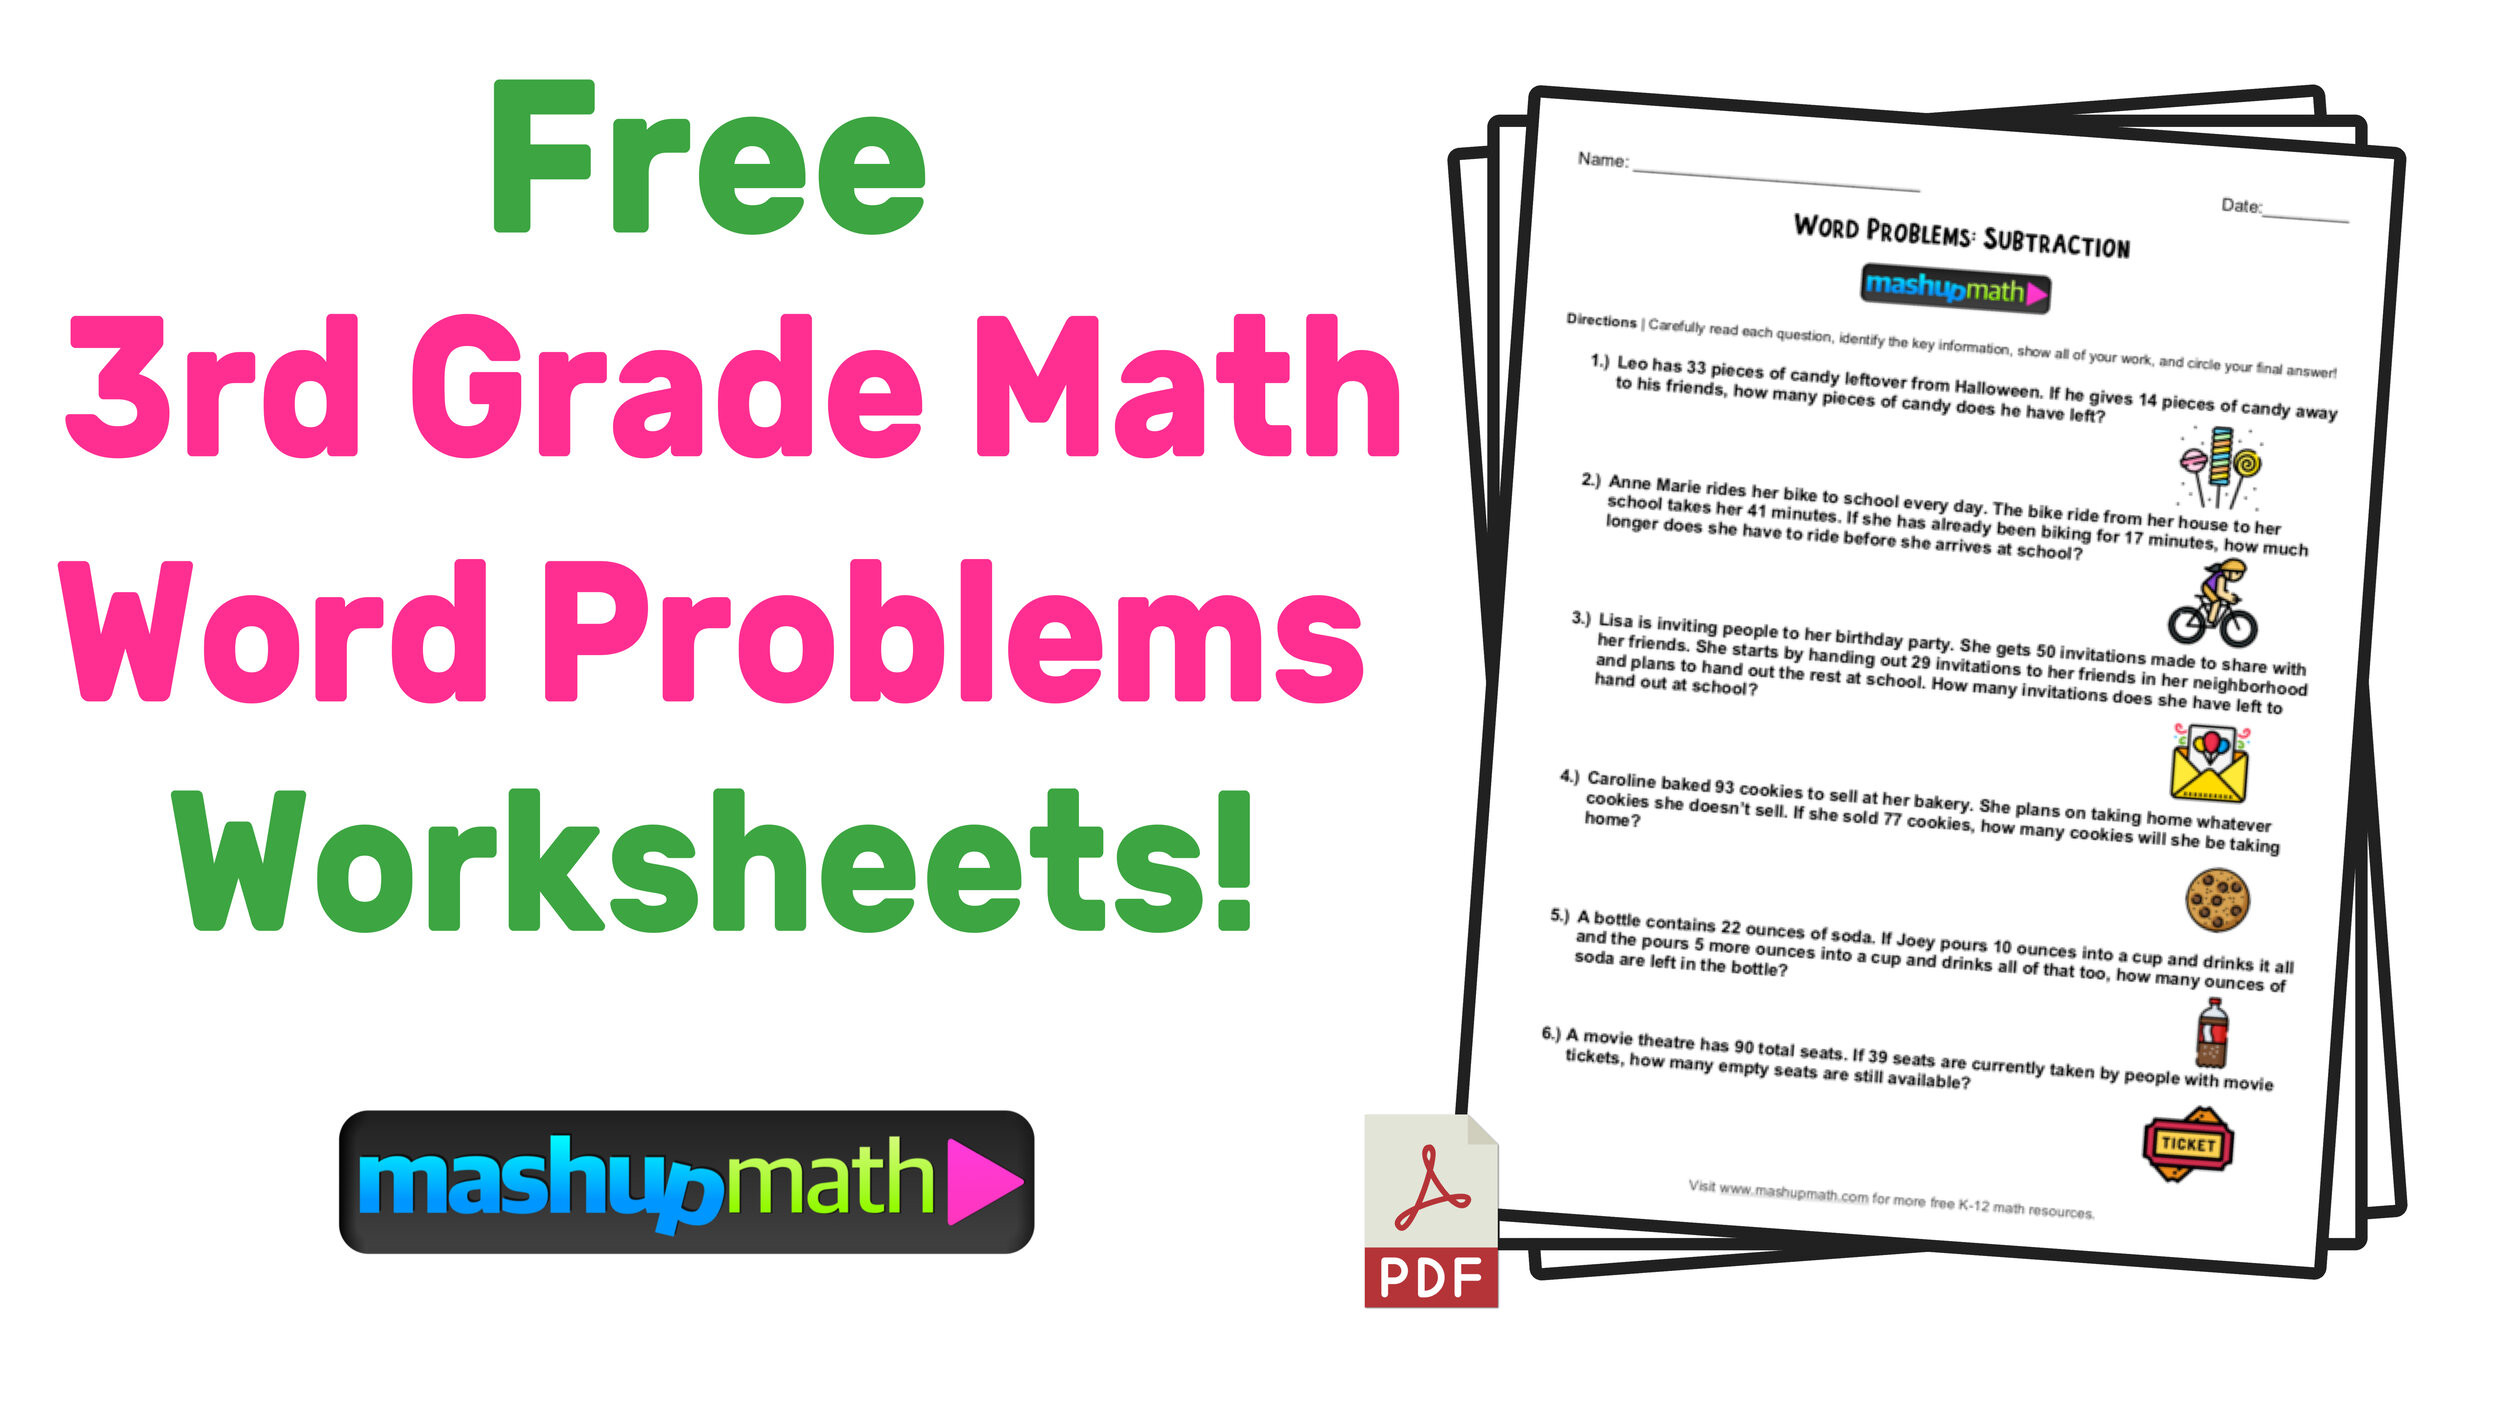 3rd Grade Measurement Worksheet 3rd Grade Math Word Problems Free Worksheets with Answers